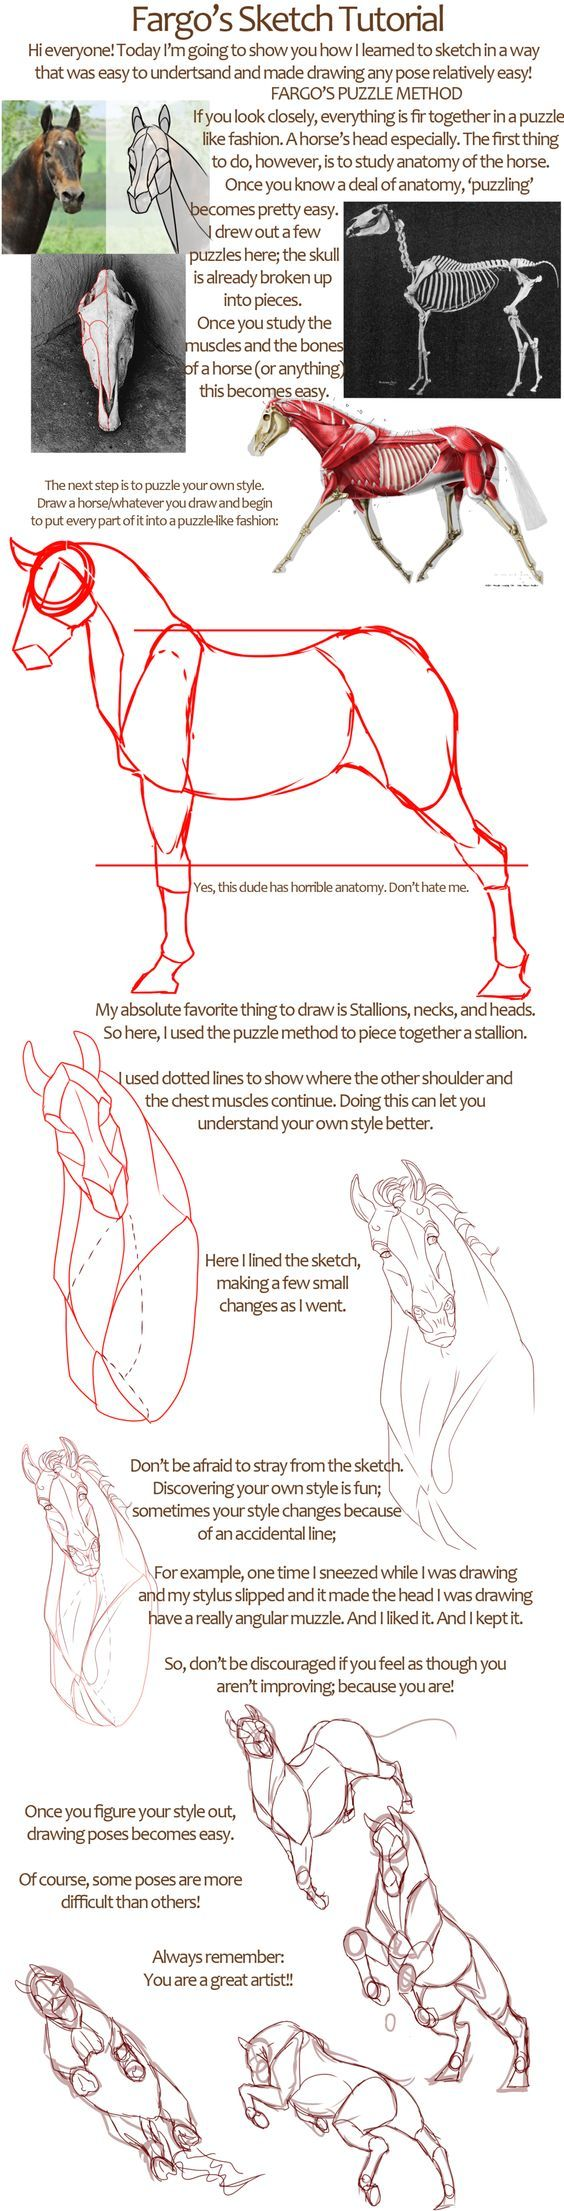 Tuto ☺ | Summer Project Ideas | Pinterest | Drawings, Tutorials and ...